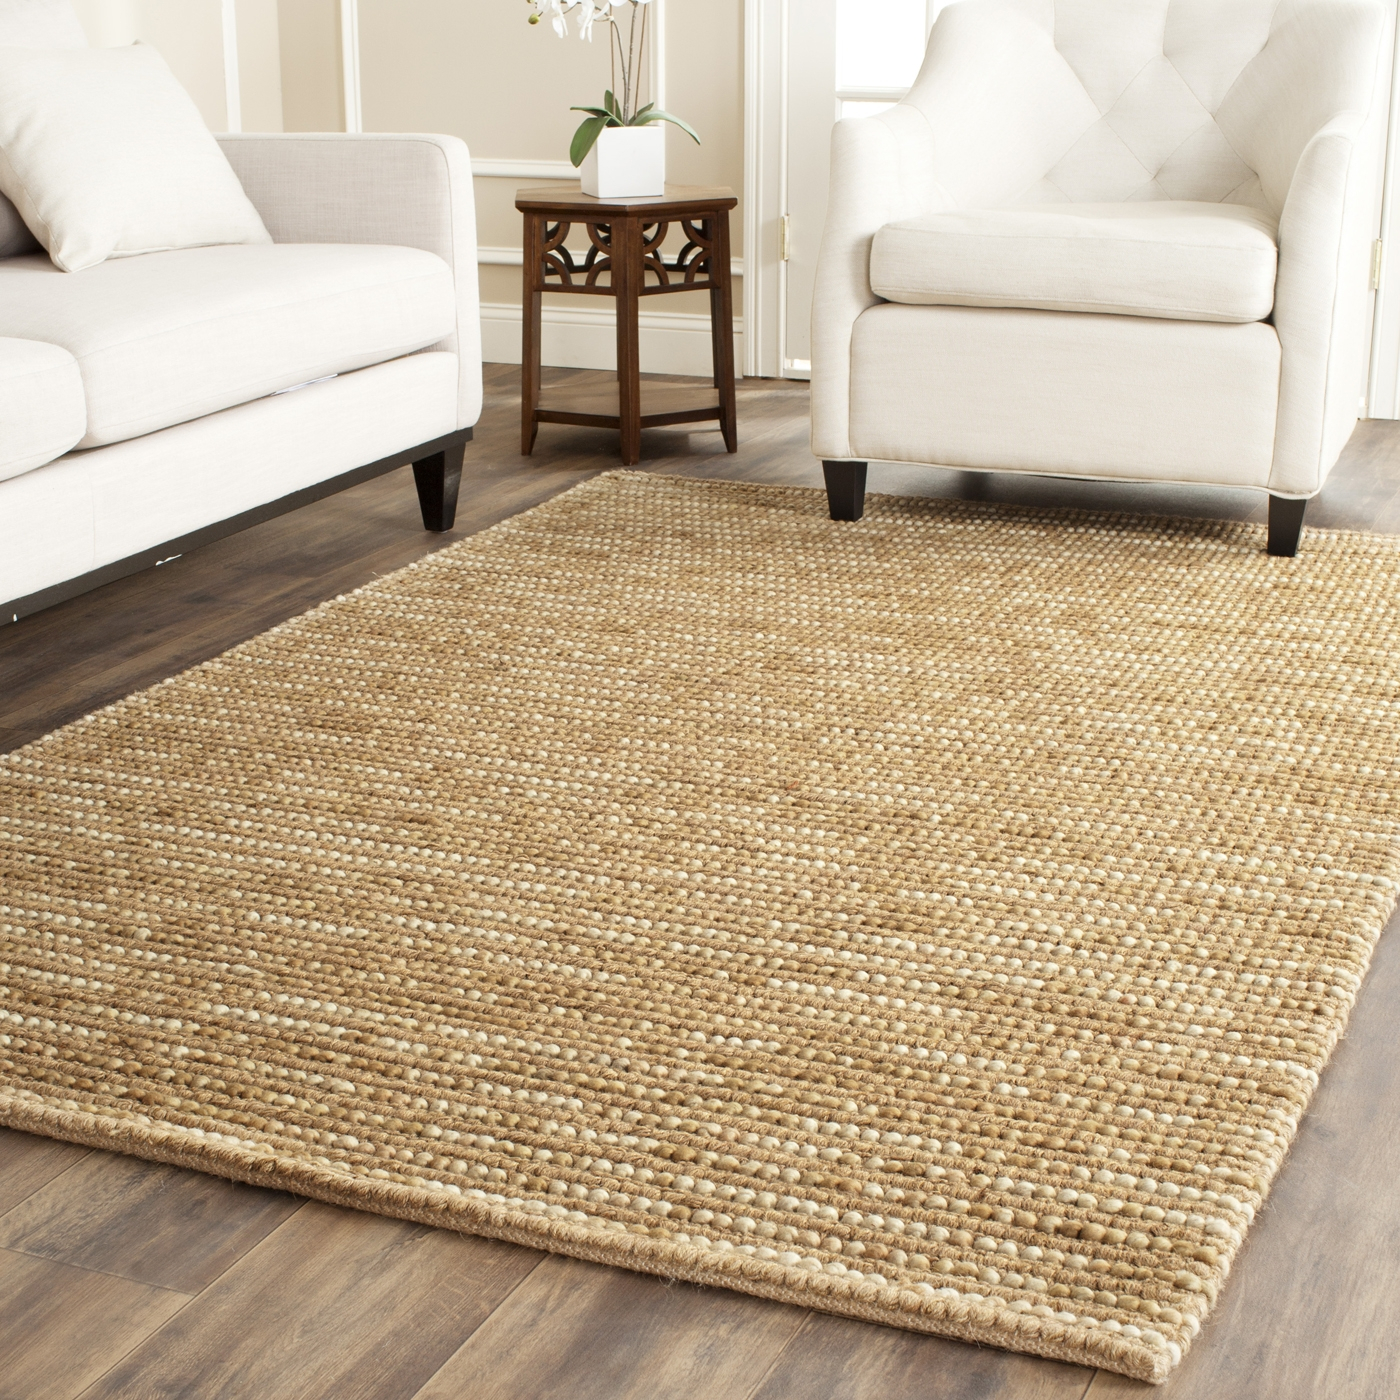 Home Depot Carpets Canada 15 Photo Of Wool Area Rugs Canada